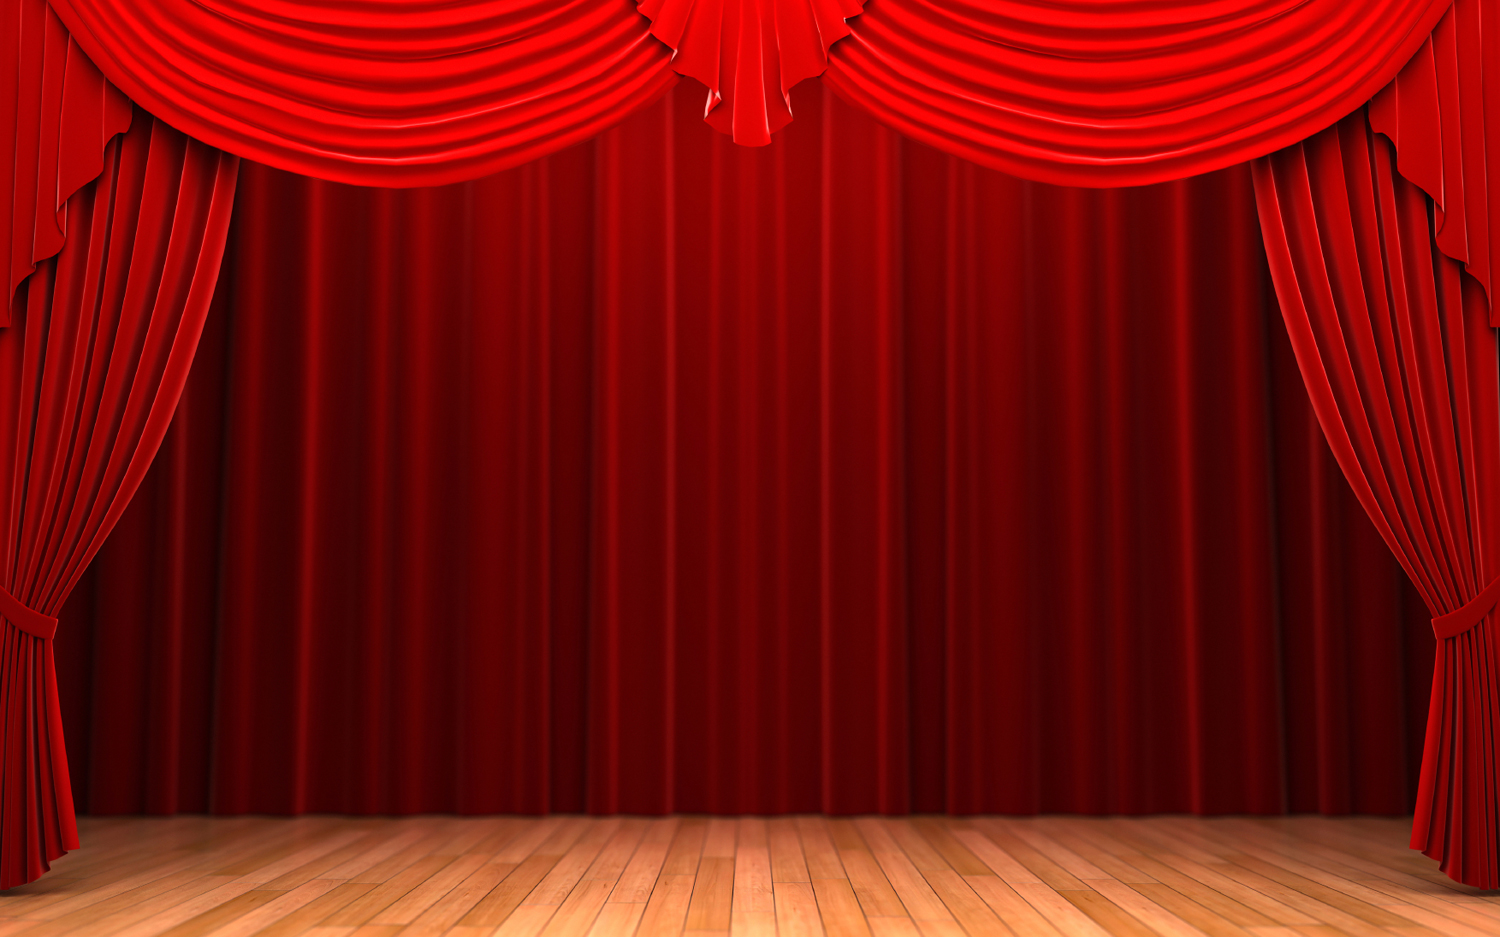 Stage curtain background open stage curtains background red stage - Closed Theater Curtains Download Image Open Stage Curtains Open Red